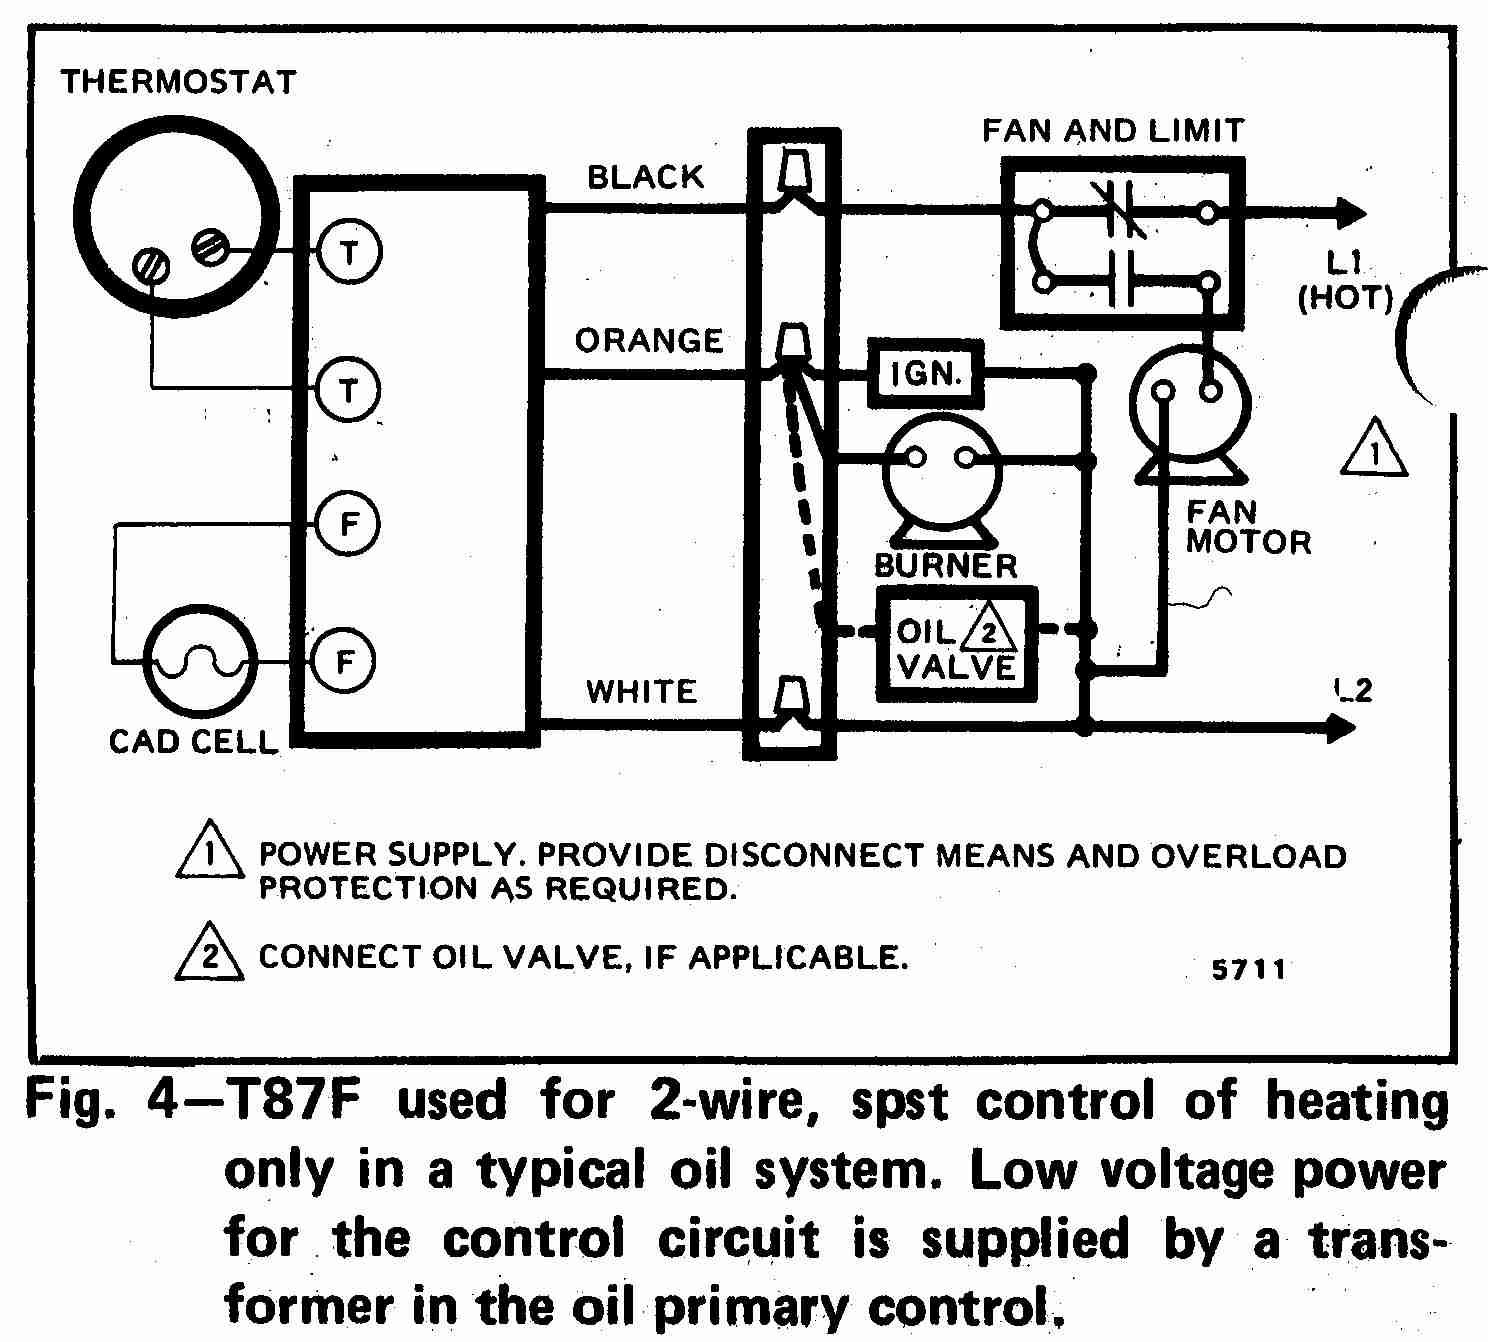 Honeywell T87F Thermostat wiring diagram for 2 wire spst control of  #666666